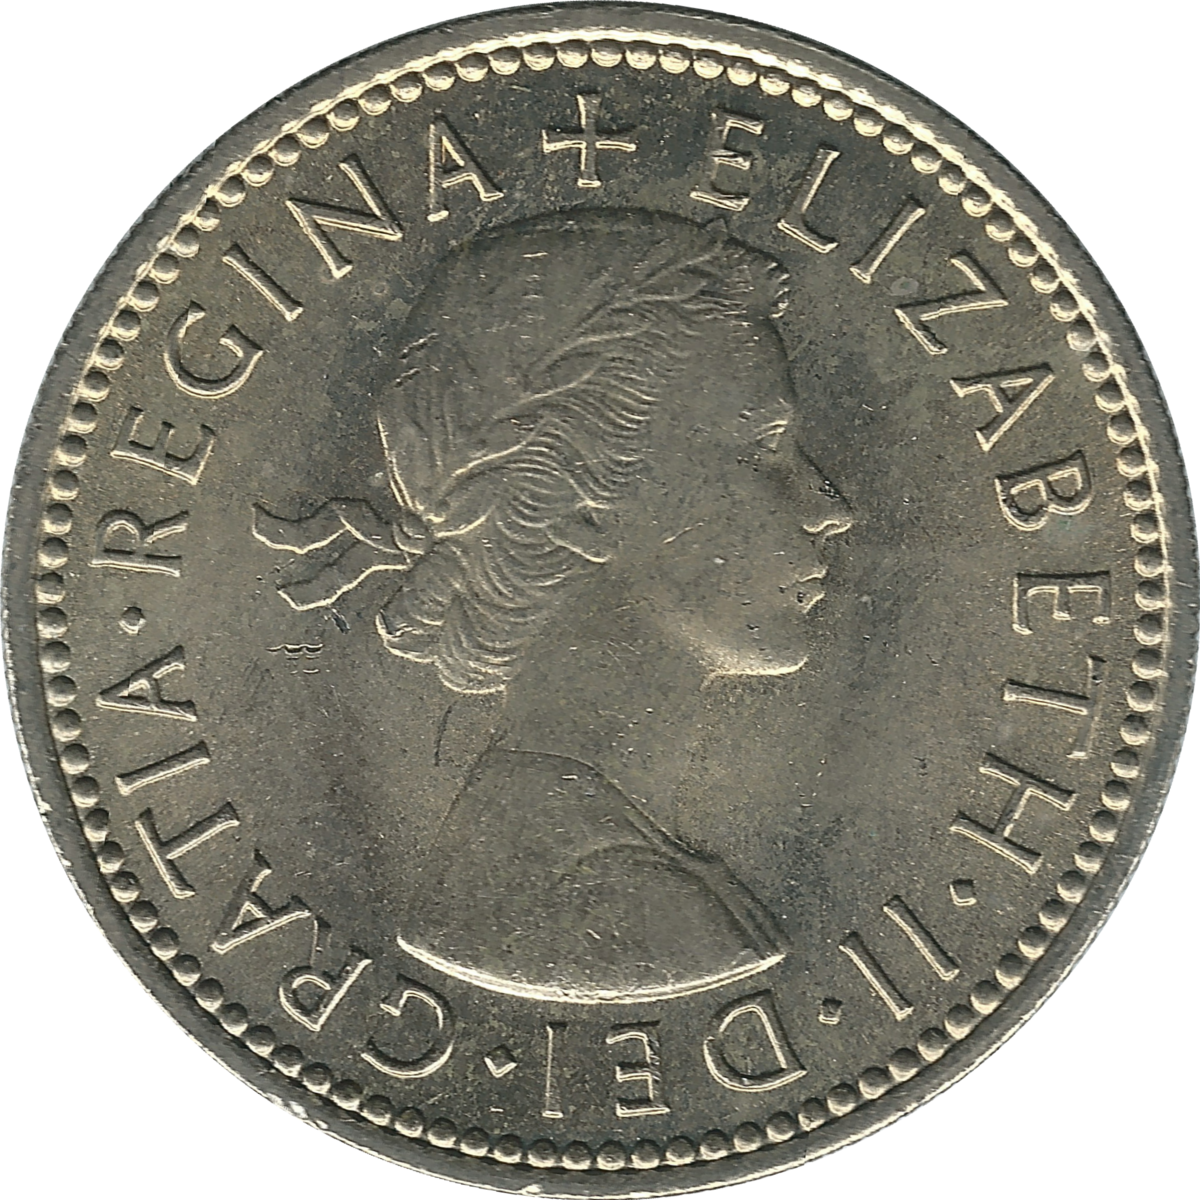 Shilling British Coin Wikipedia